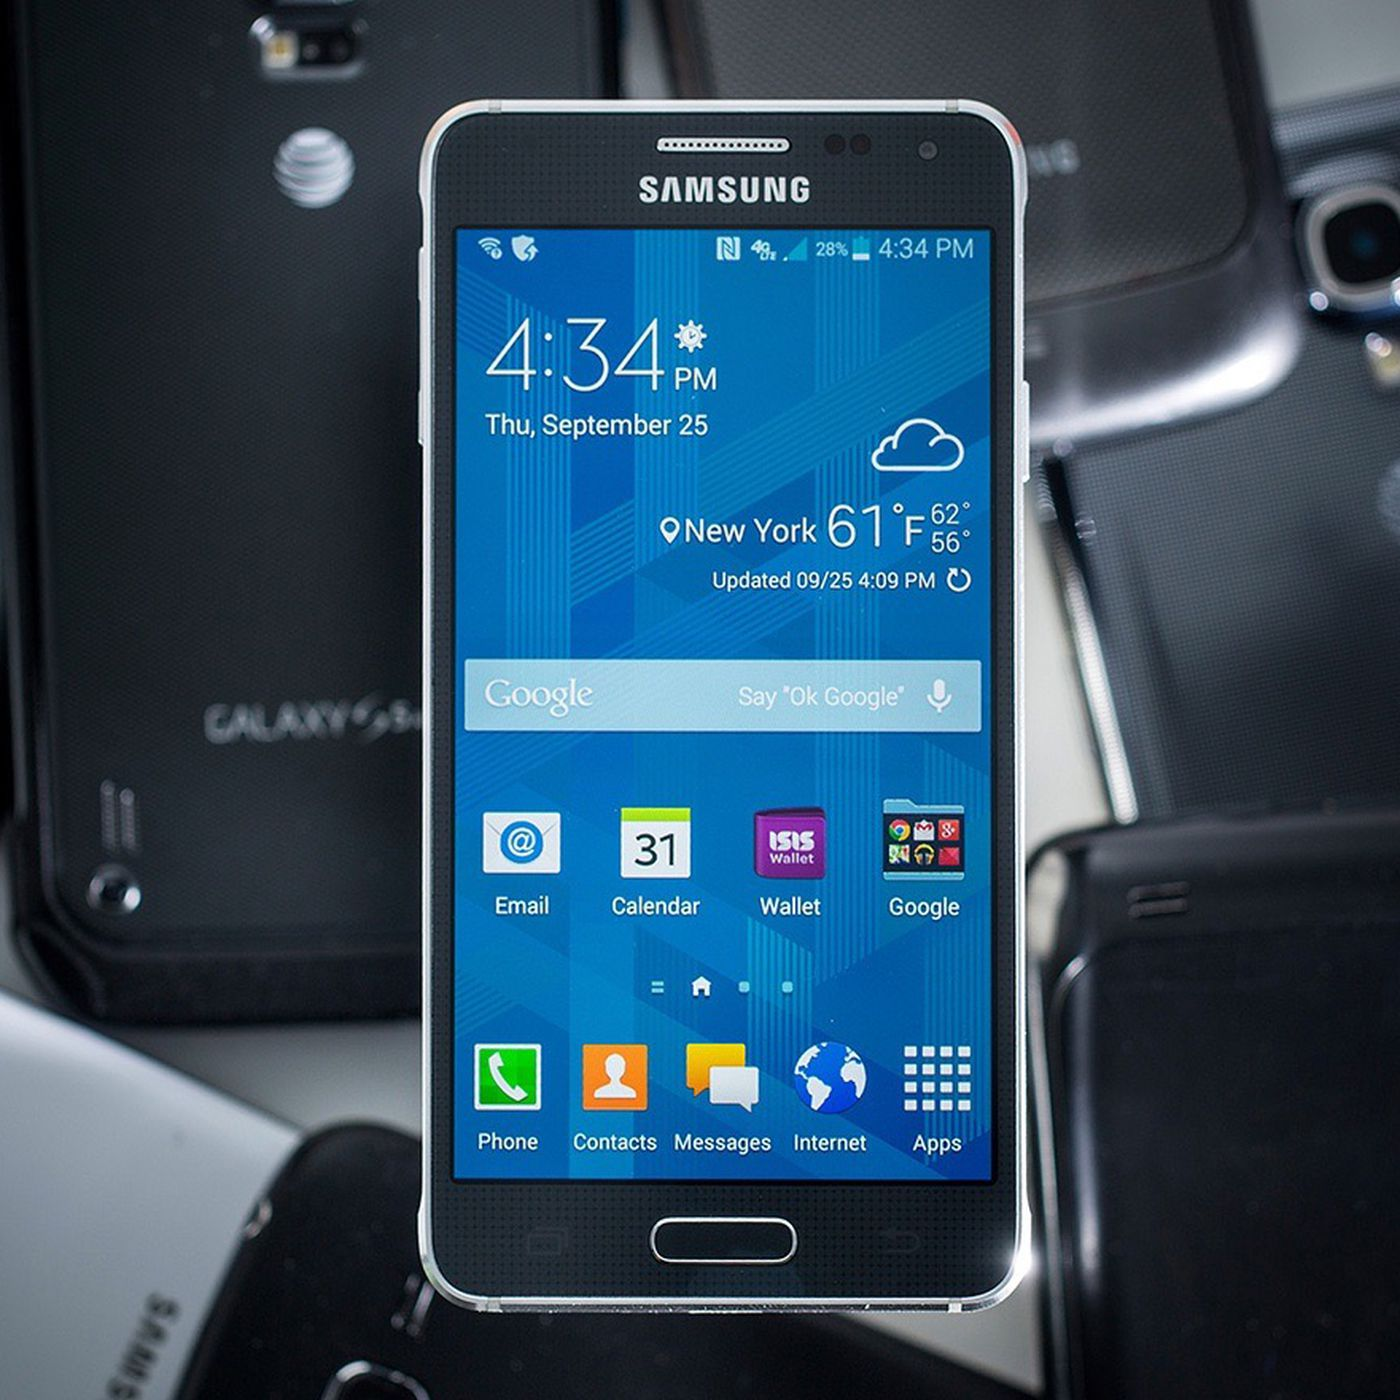 Galaxy Alpha Vs S5 samsung galaxy alpha review - the verge